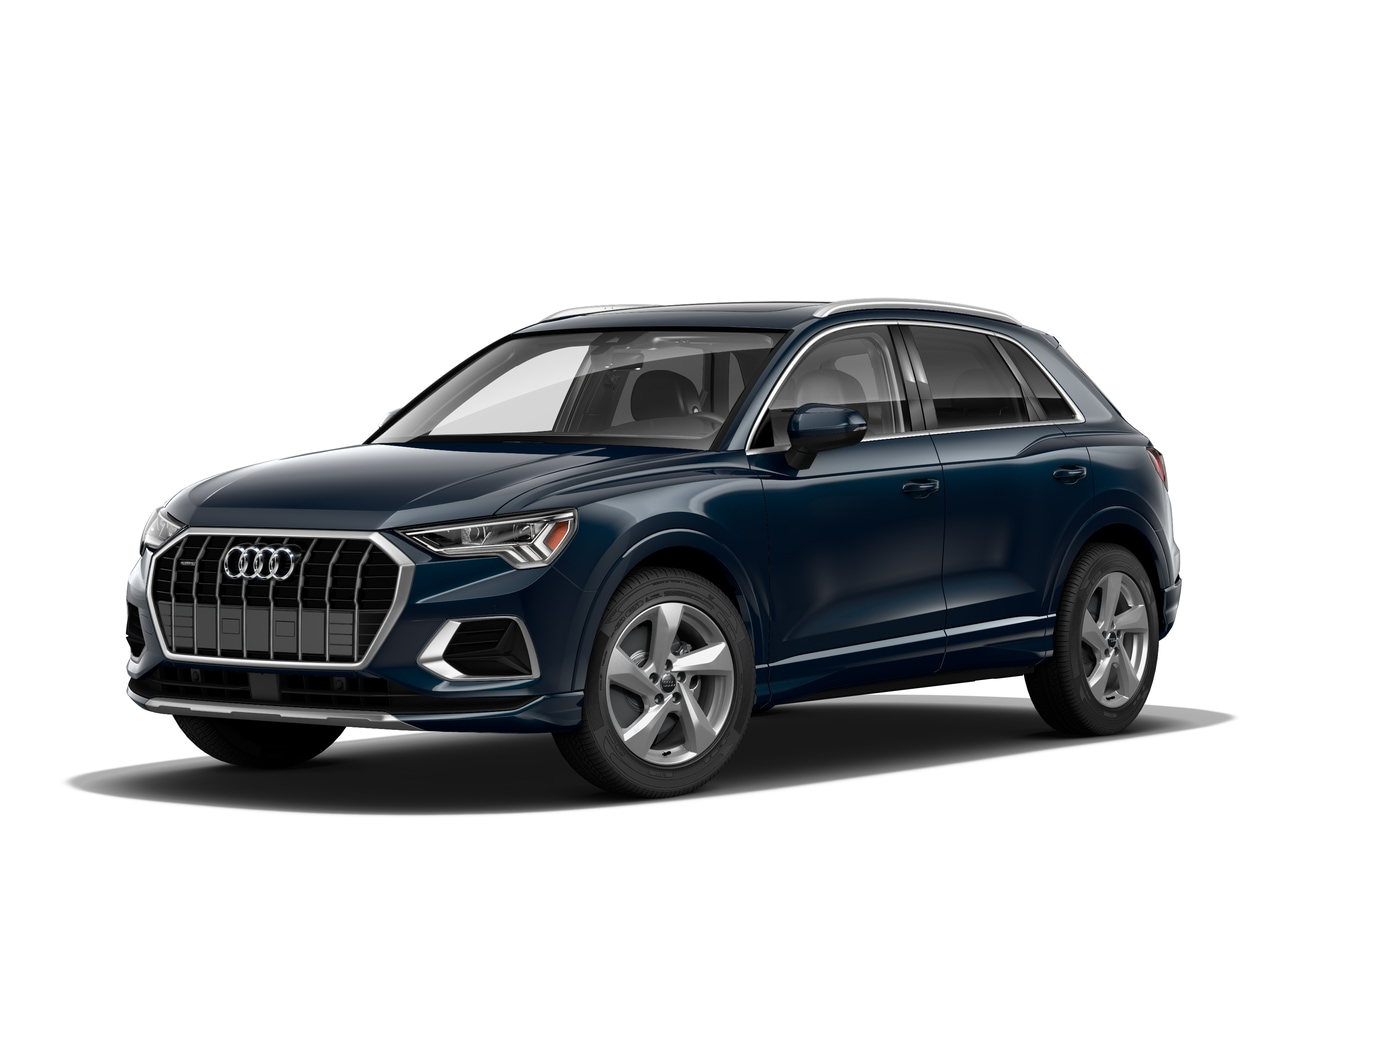 New 2020 Audi Q3 45 Premium Plus For Sale In Eastchester Ny Vin Wa1becf33l1103578